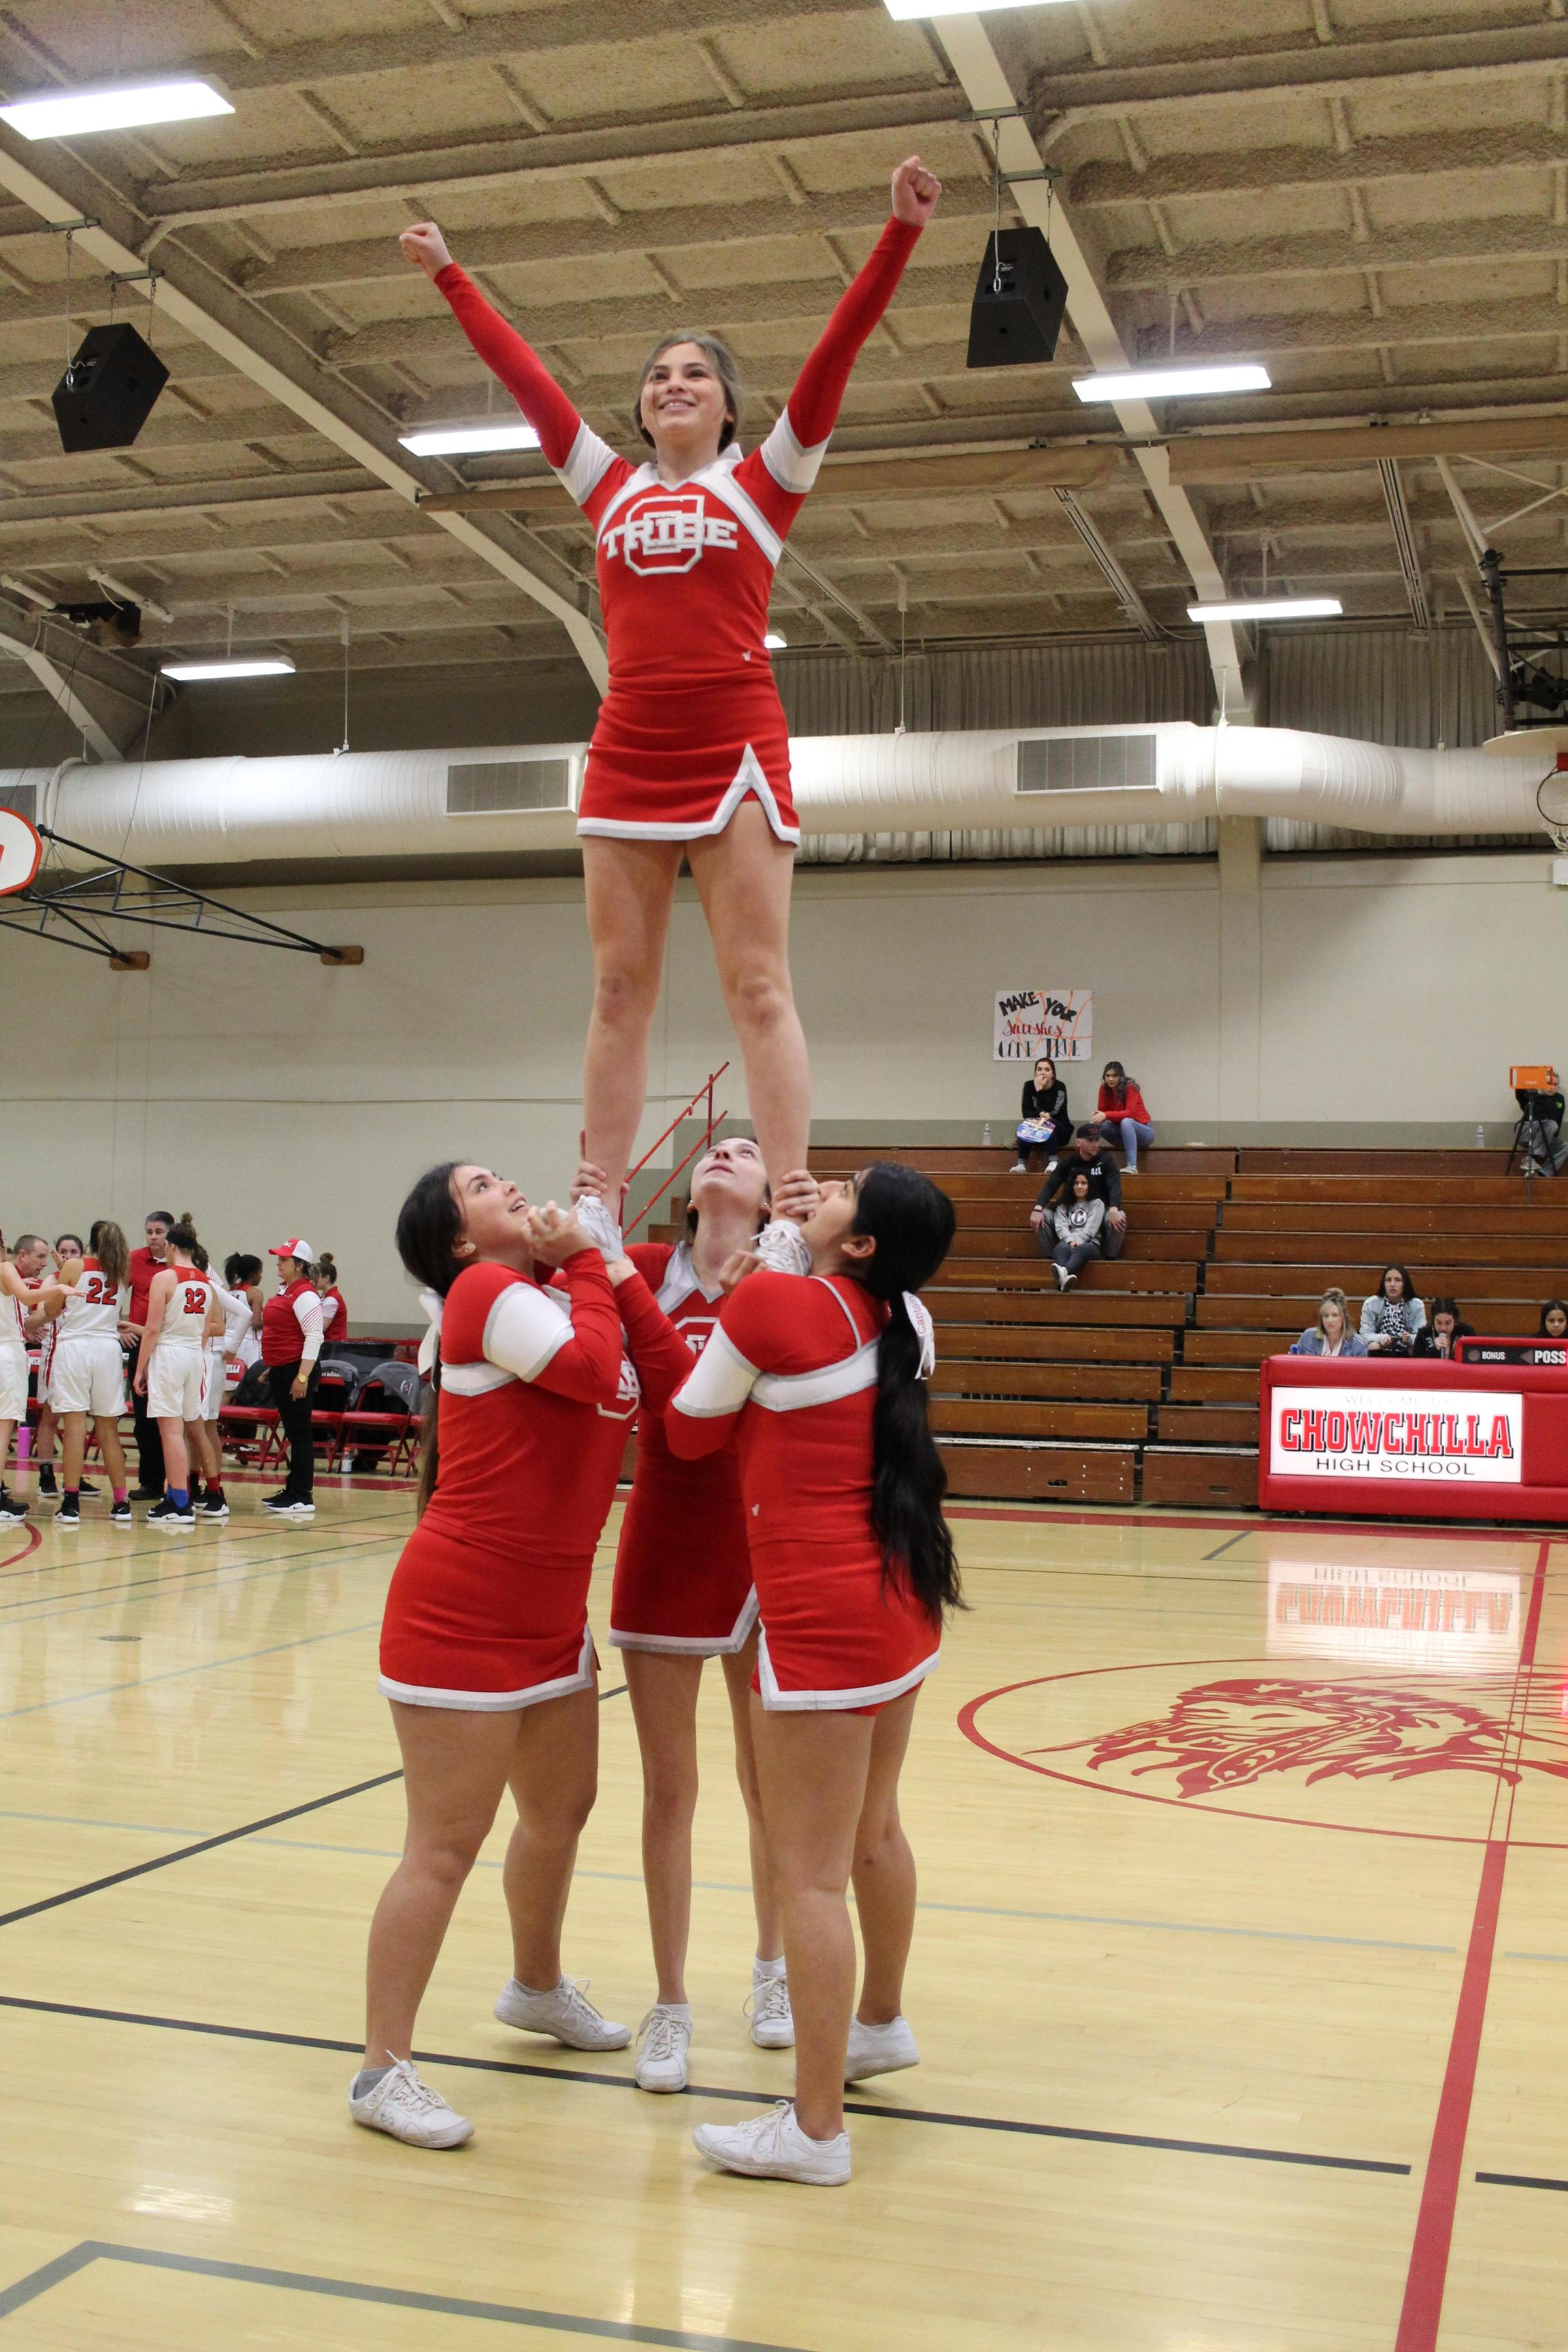 Cheerleaders at the Granite Hills basketball game